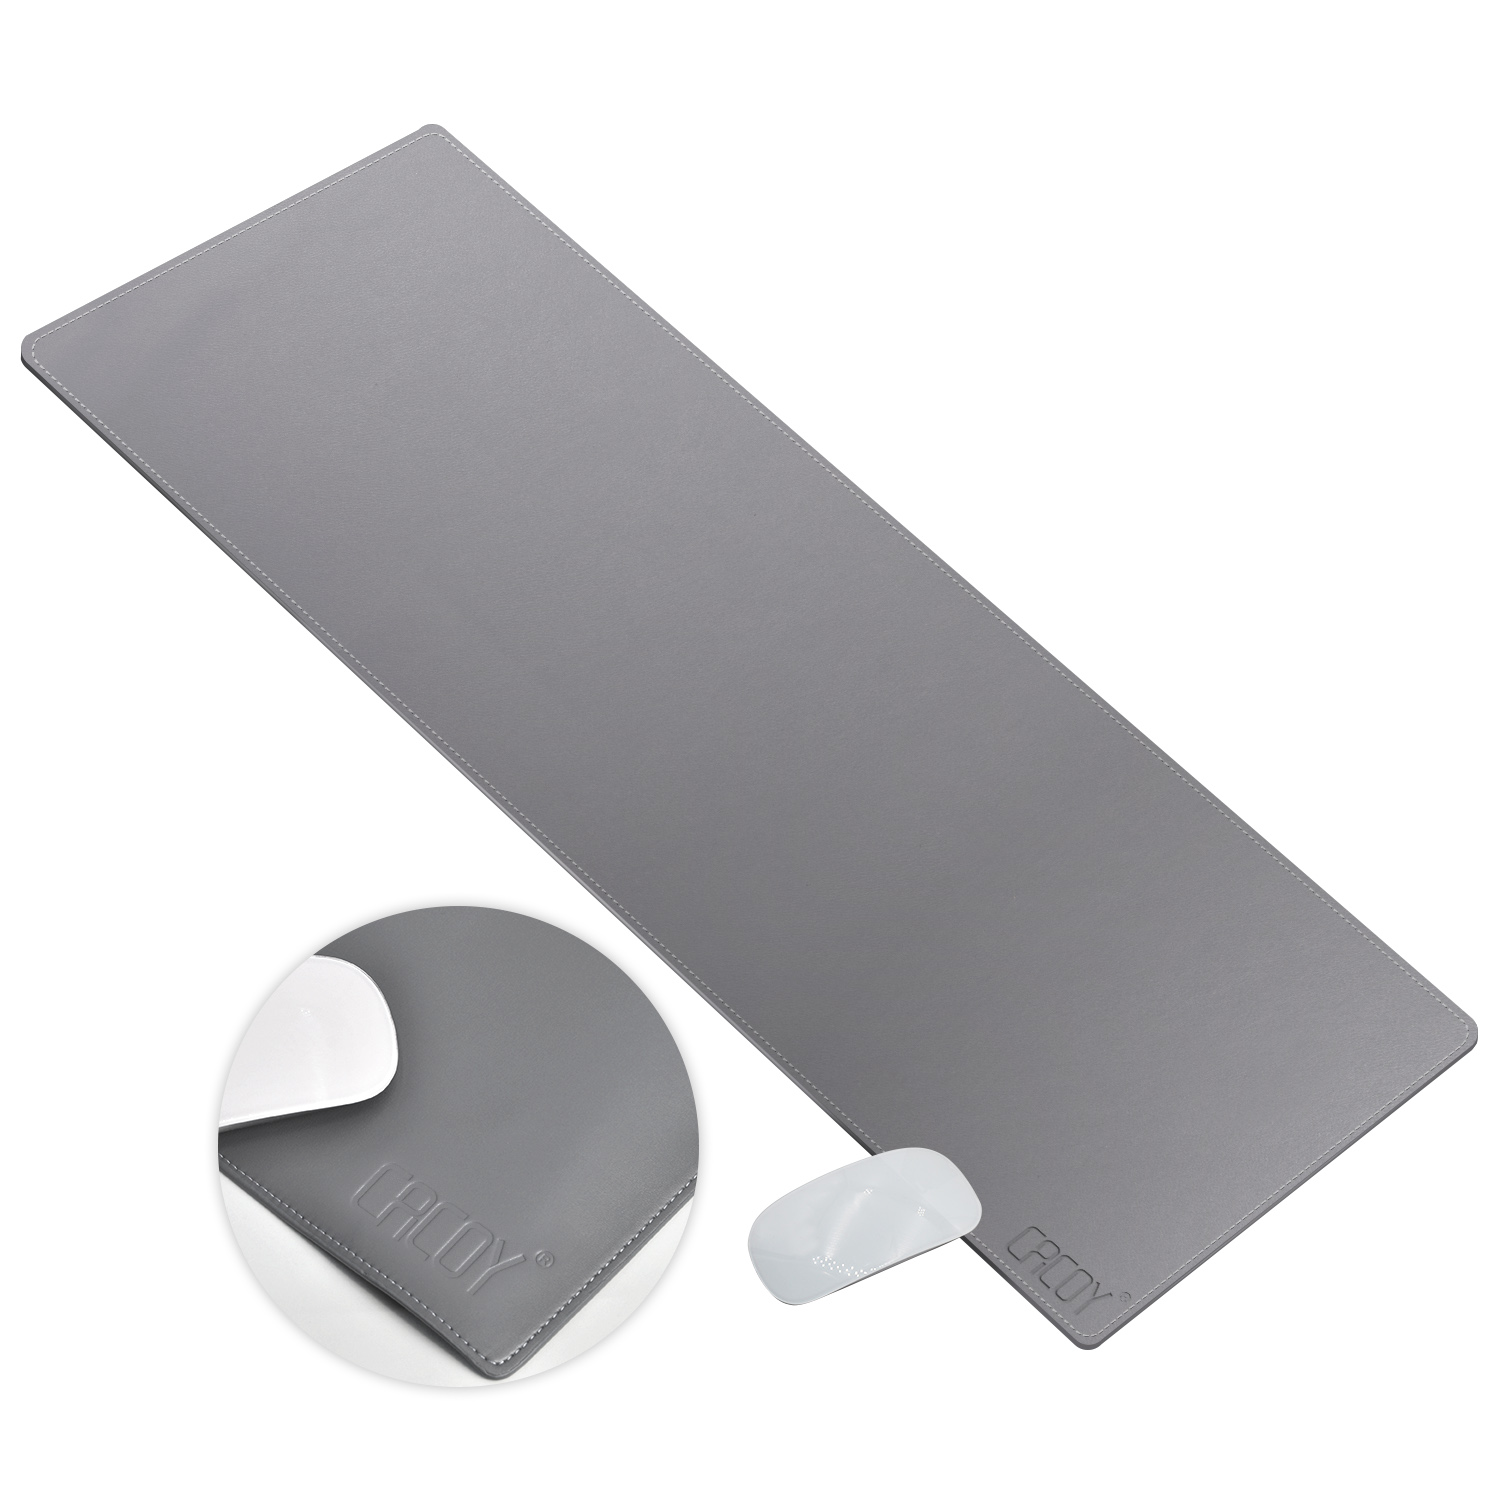 Oversized Mouse Pad 39 4x15 7 In Pu